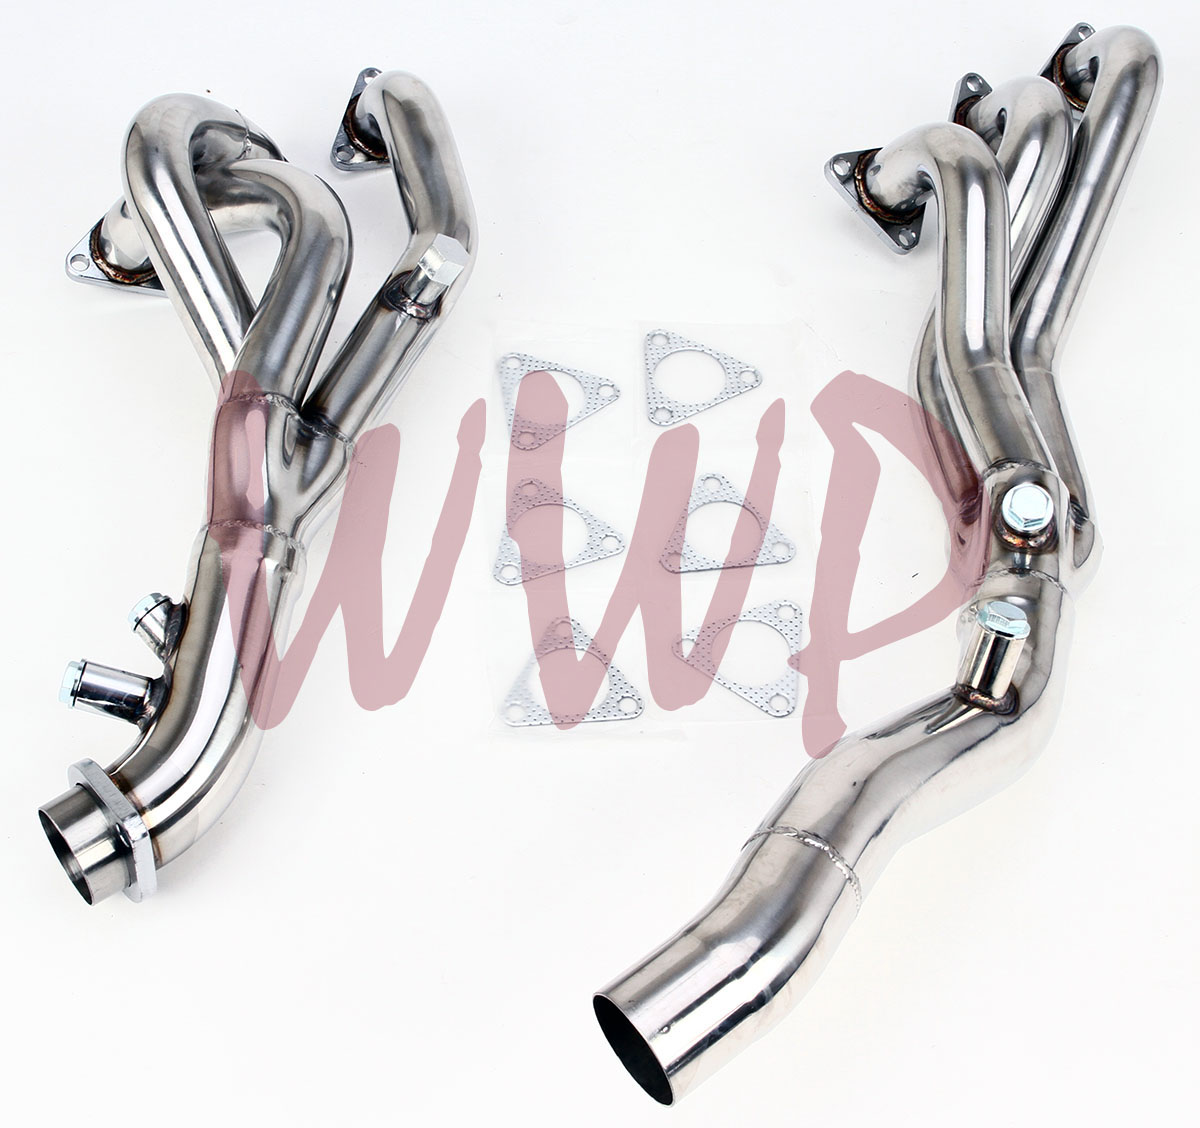 Stainless Steel Exhaust Headers Manifold System For 01 06